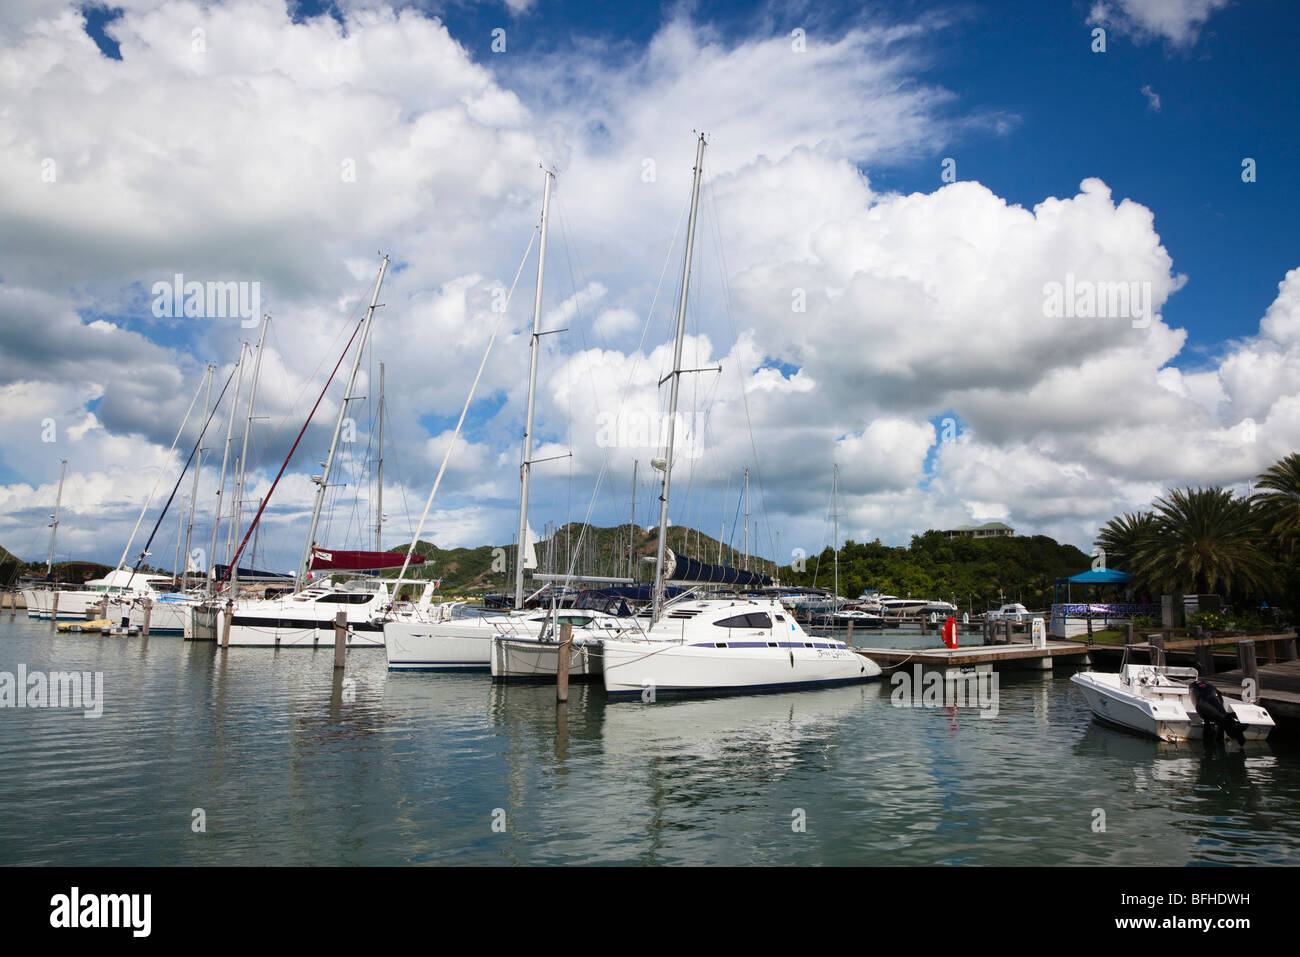 Yachts in marina at Jolly Harbour, Antigua Caribbean West Indies - Stock Image